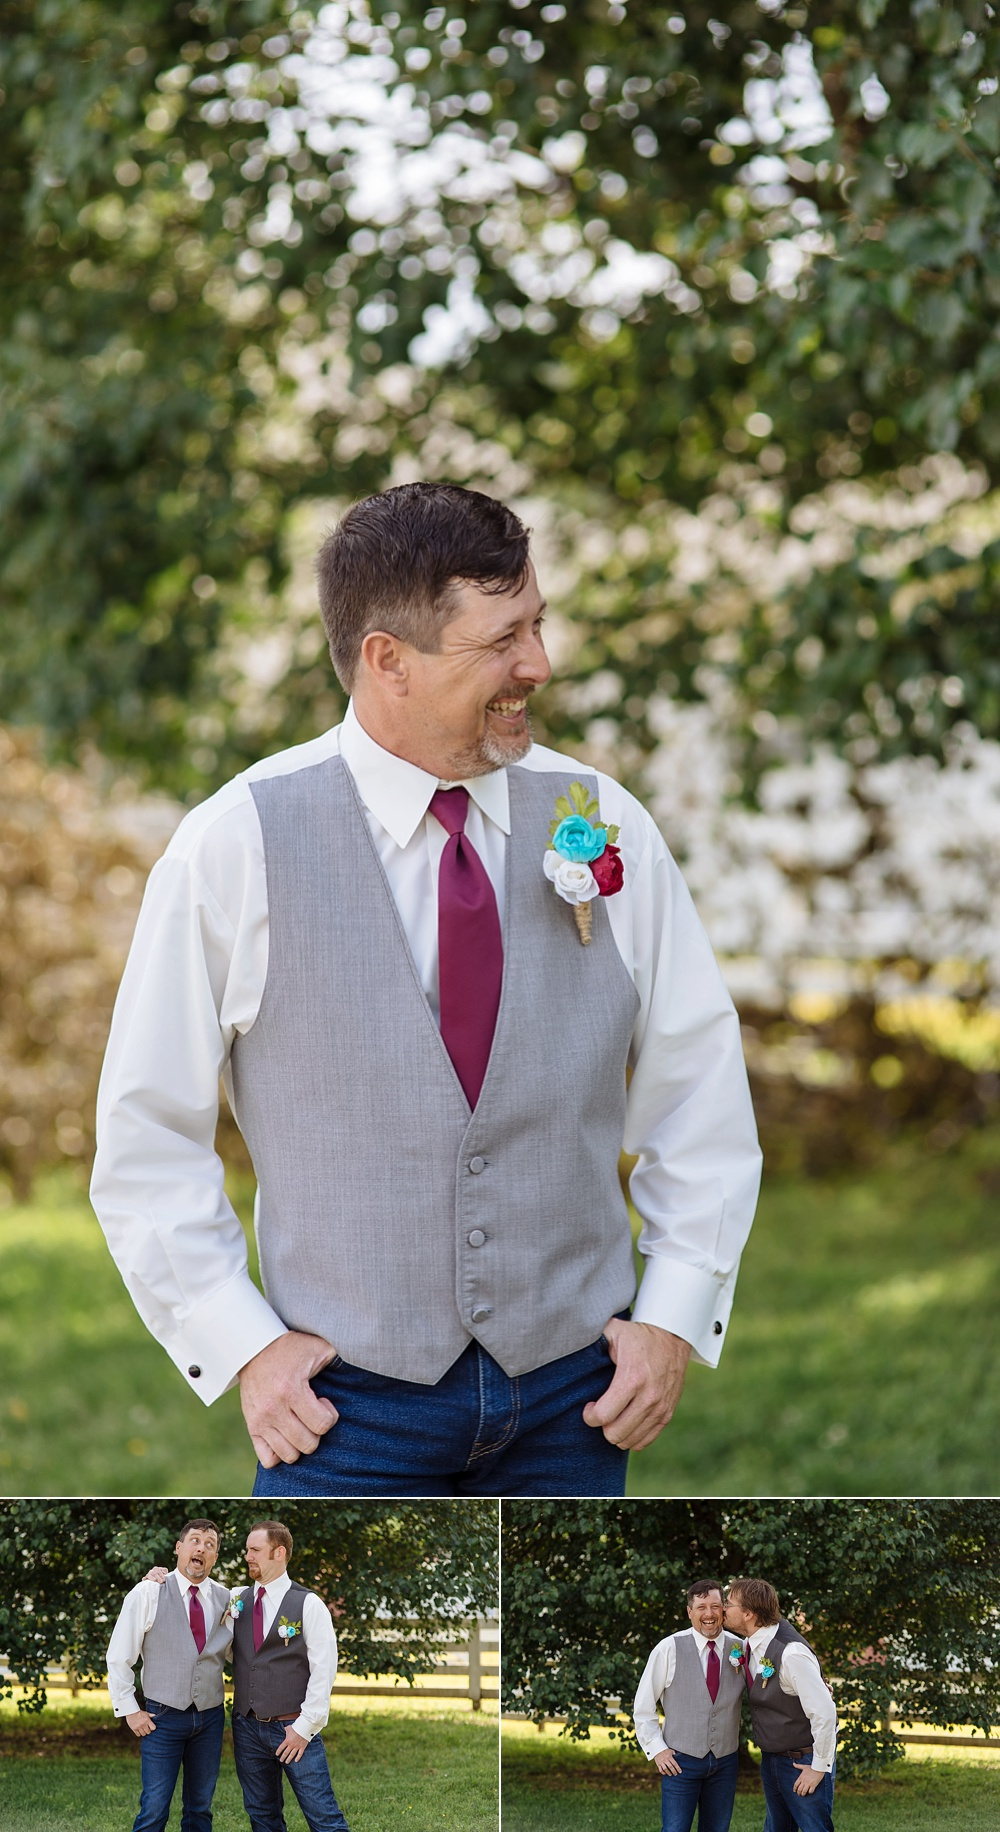 Candid photo of groom on a sunny day looking off while smiling